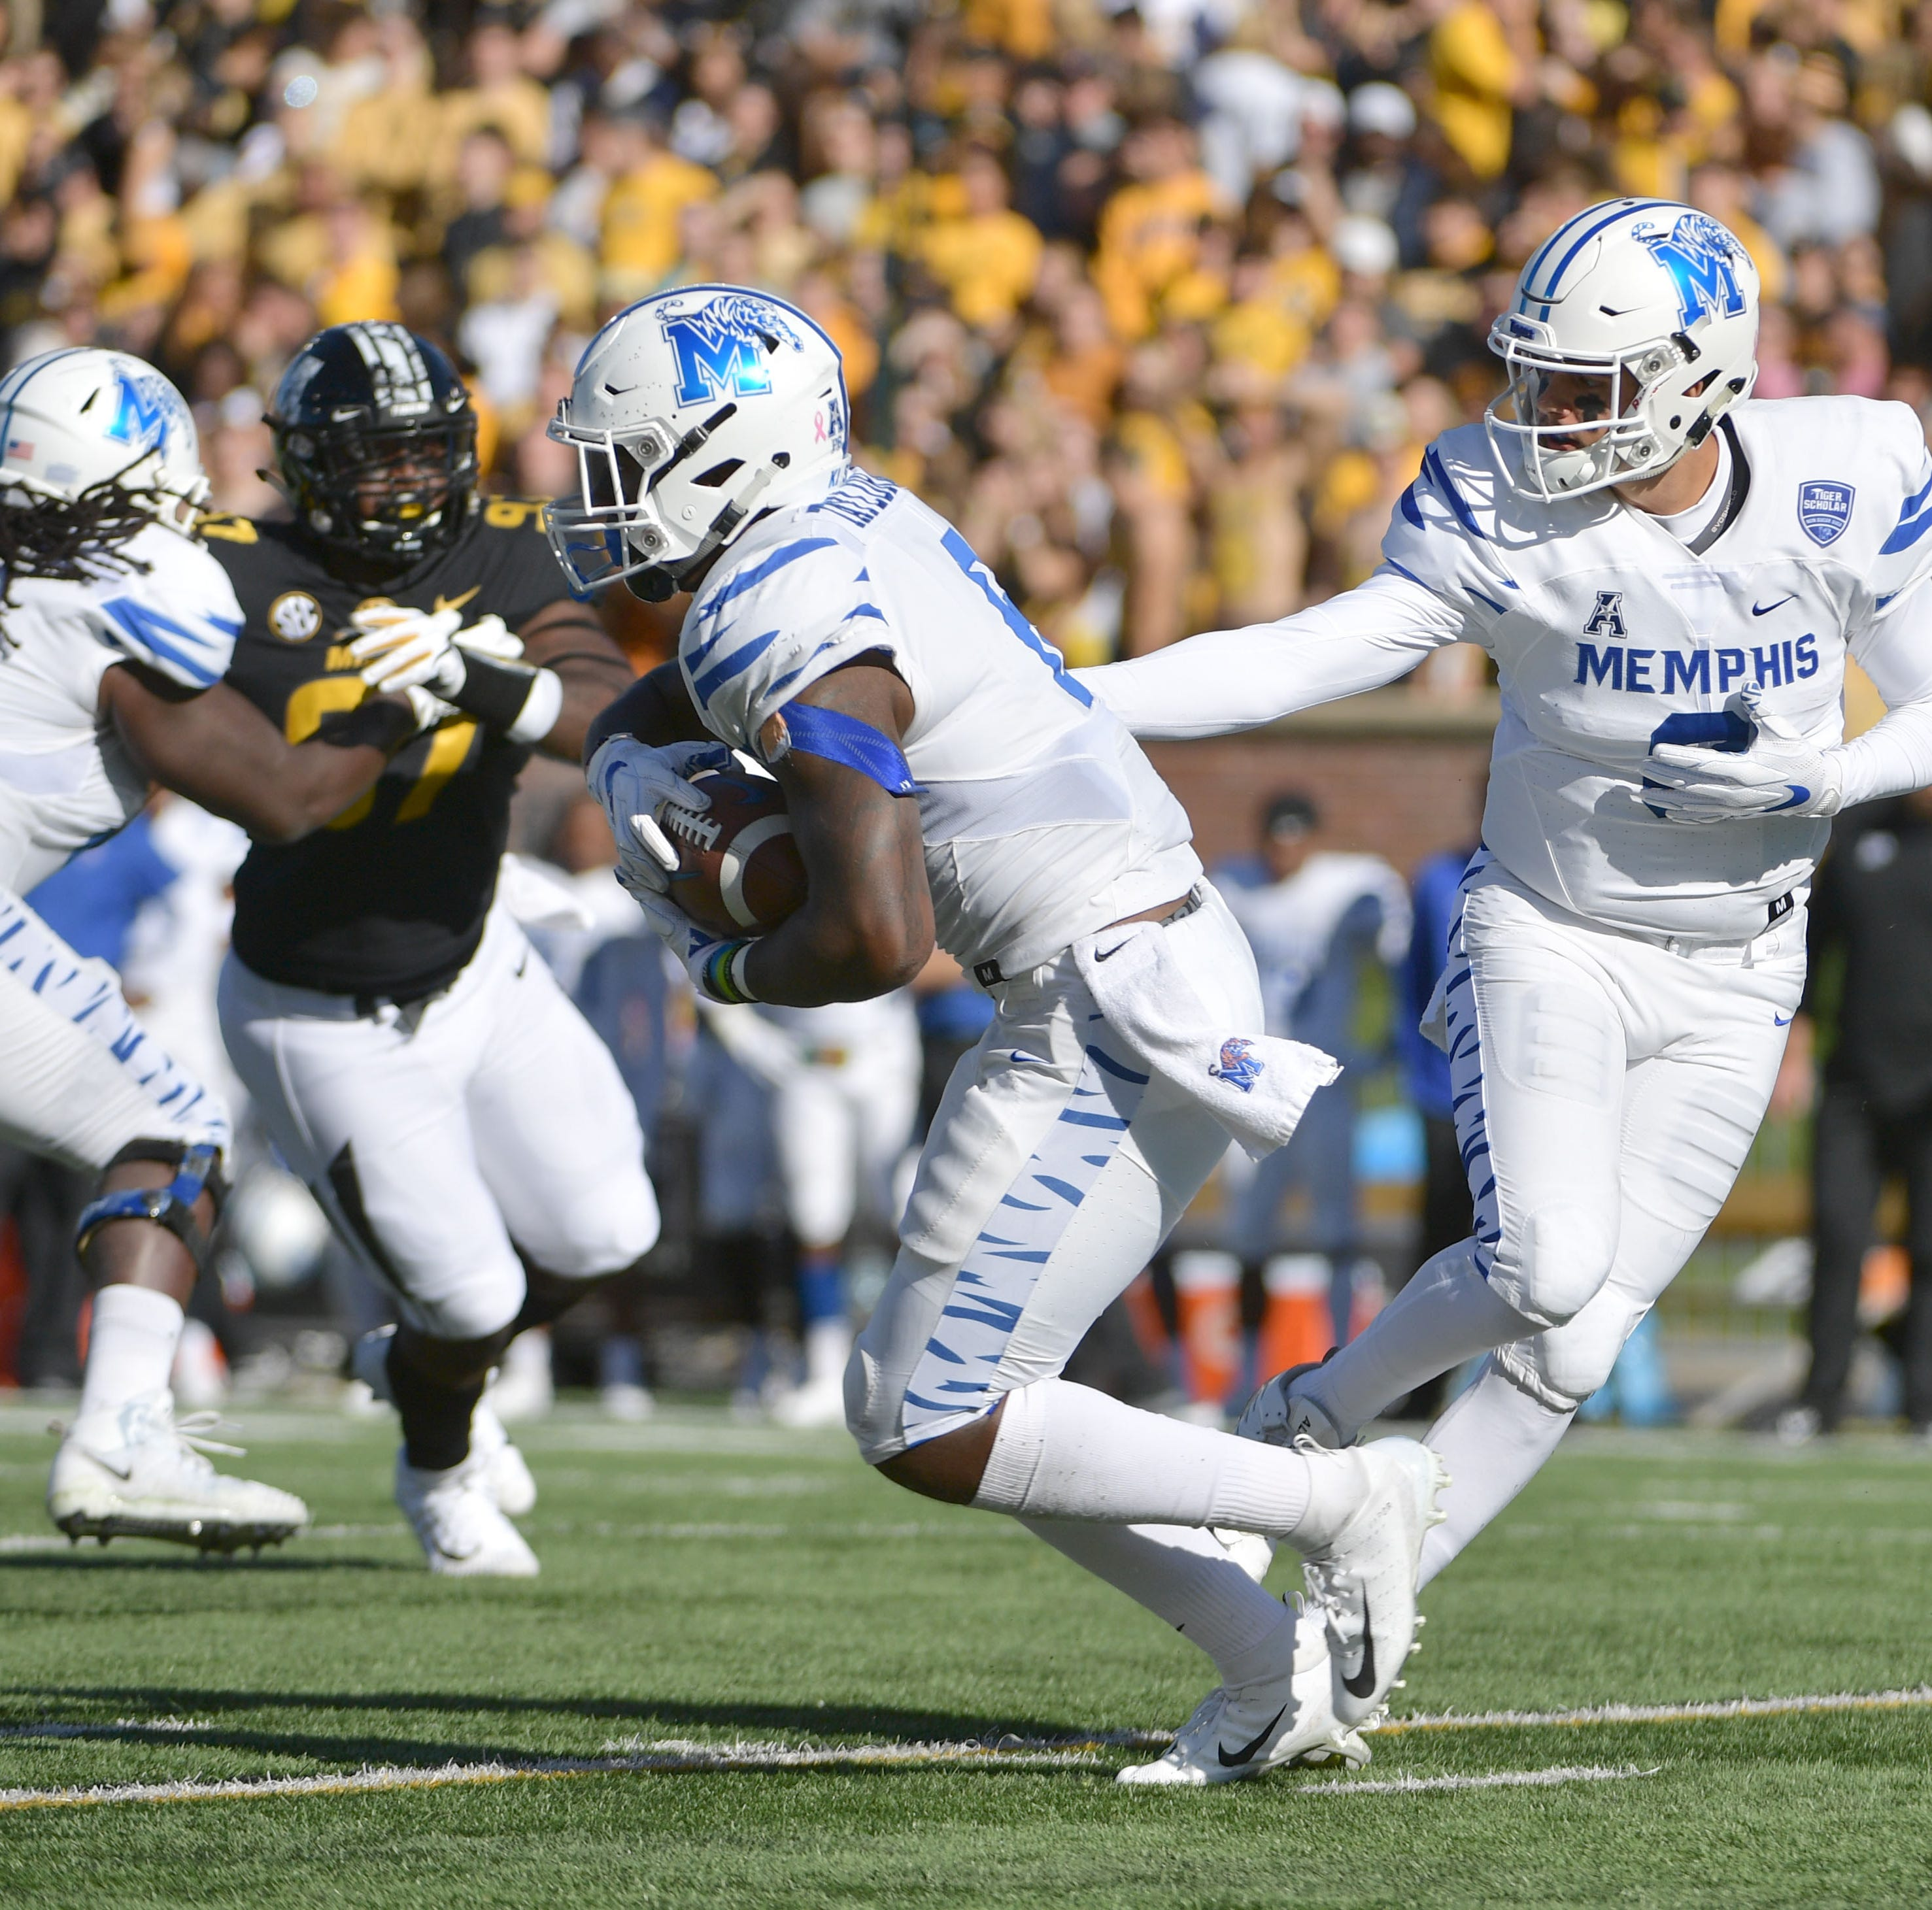 How Memphis lost 65-33 at Missouri